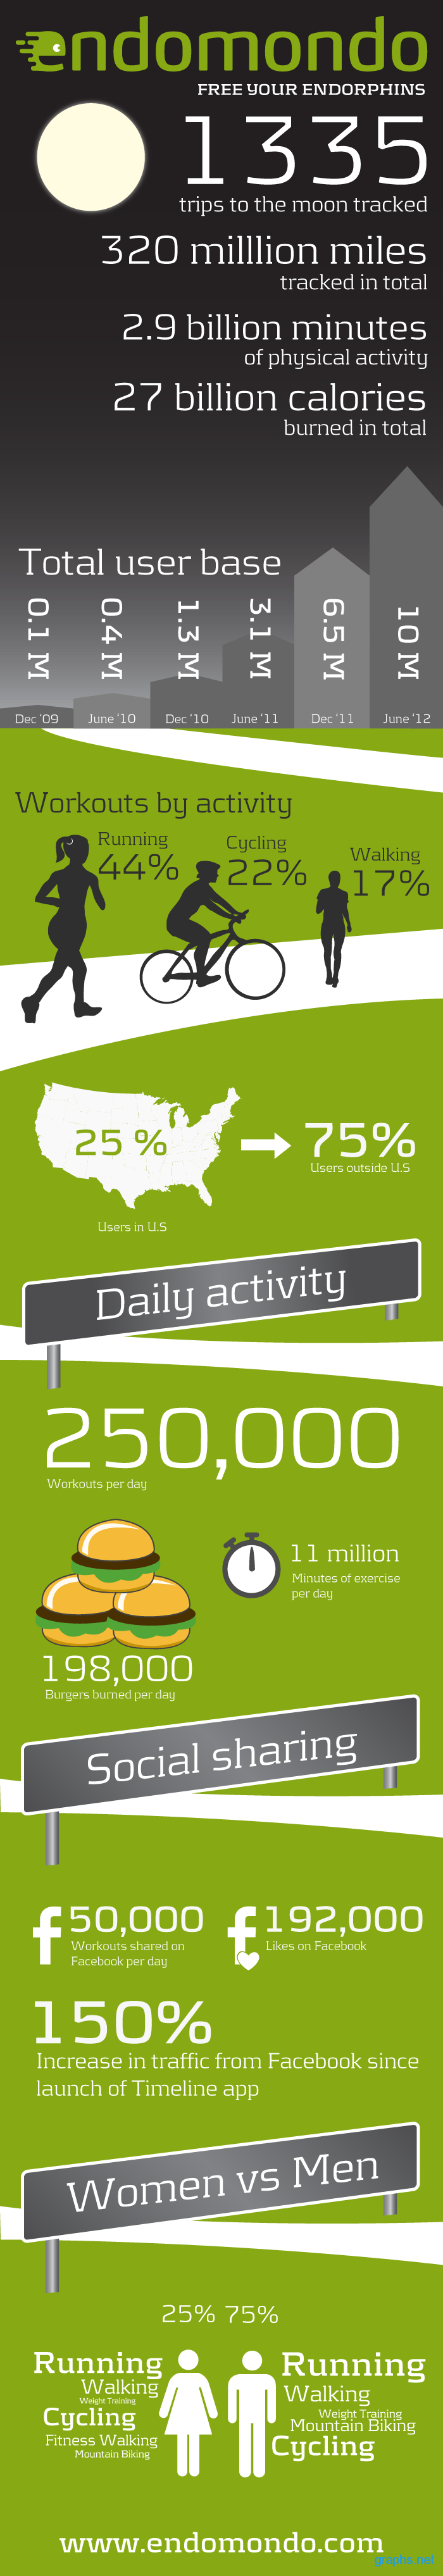 endomondo user activity